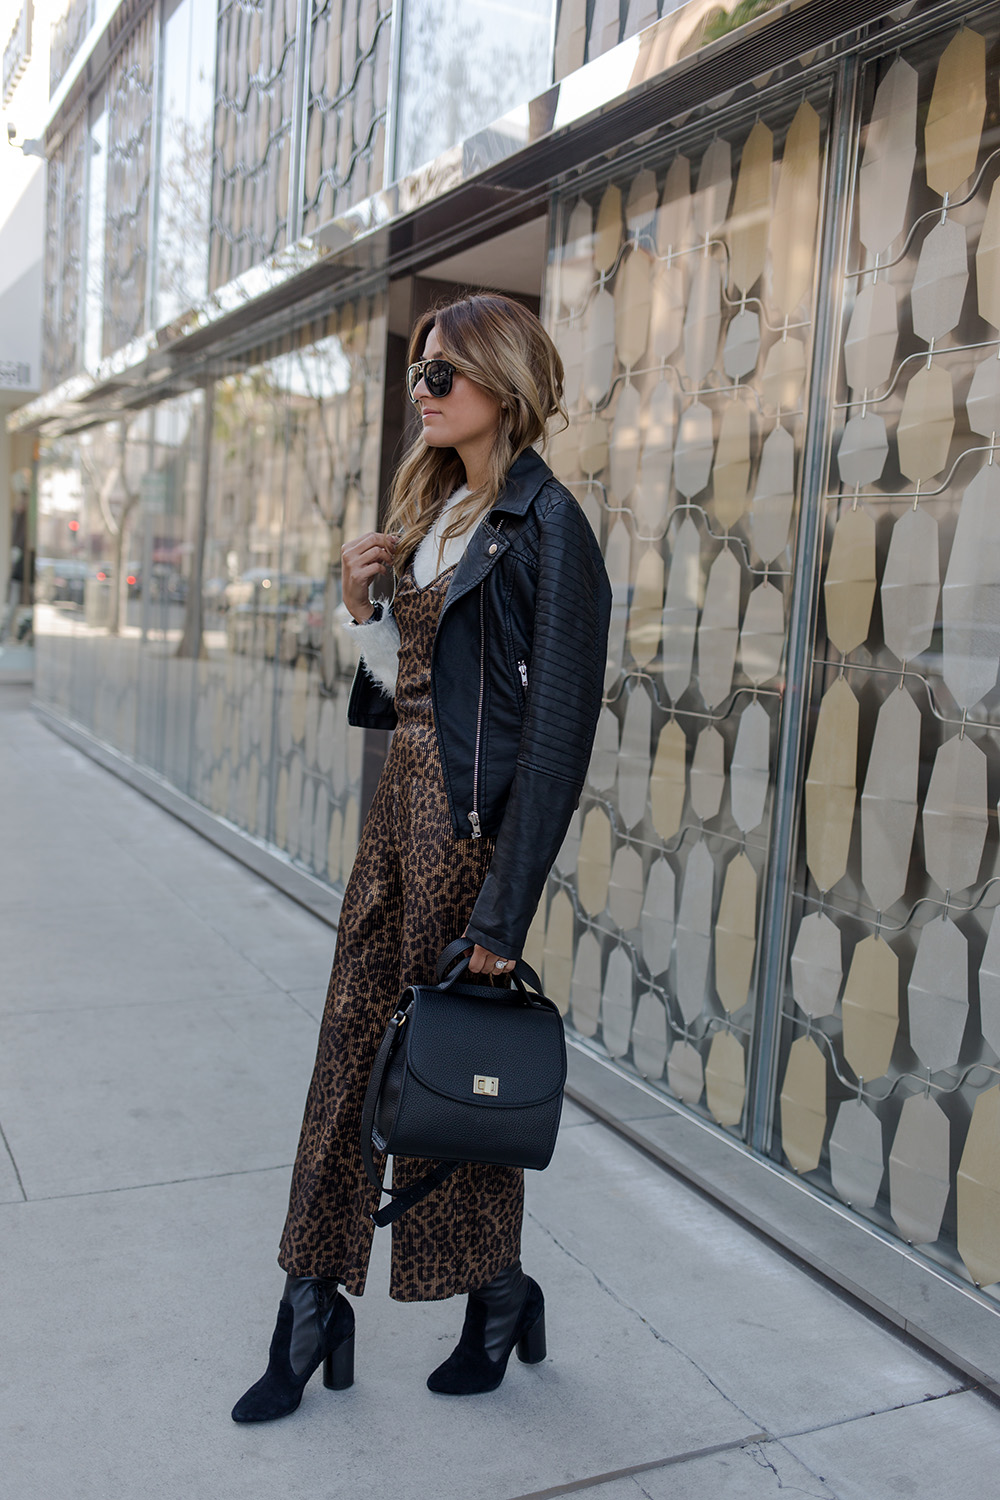 sans souci, leopard, chic, melrodstyle, streestyle, ootd, fashion, style, la blogger, latina blogger, hispanic blogger, mexican blogger, beverly hills,